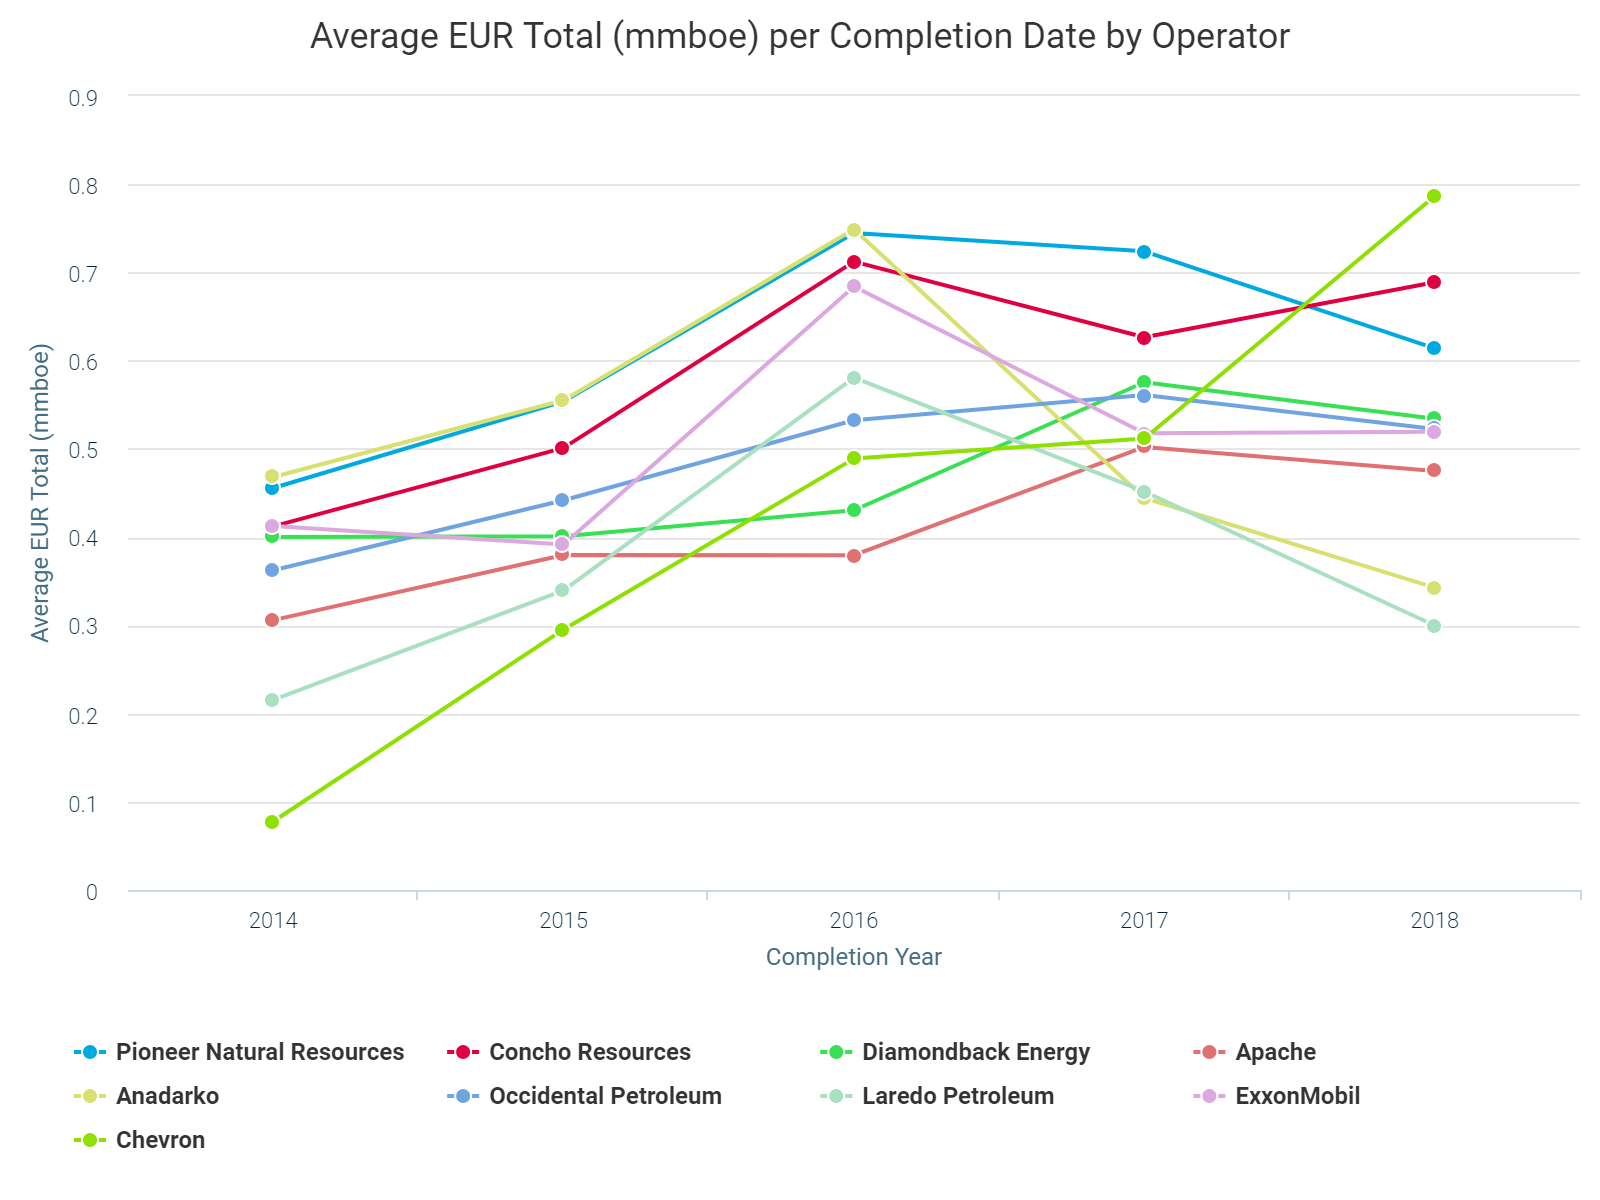 Average EUR Total (mmboe) per Completion Date by Operator